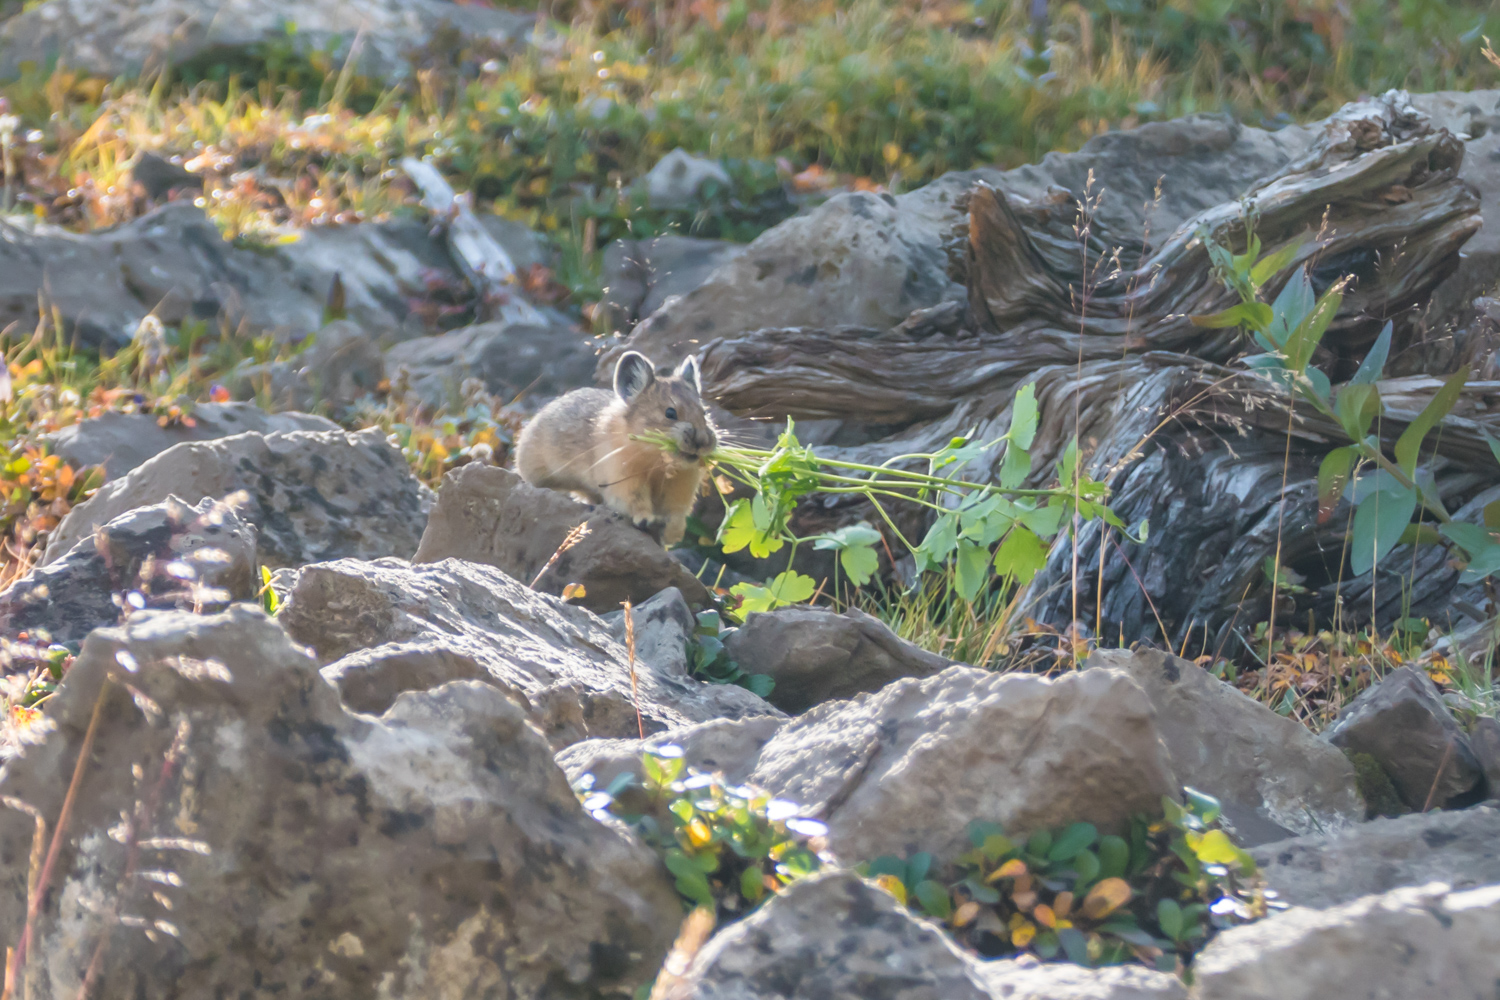 Industrious Pika getting ready for winter